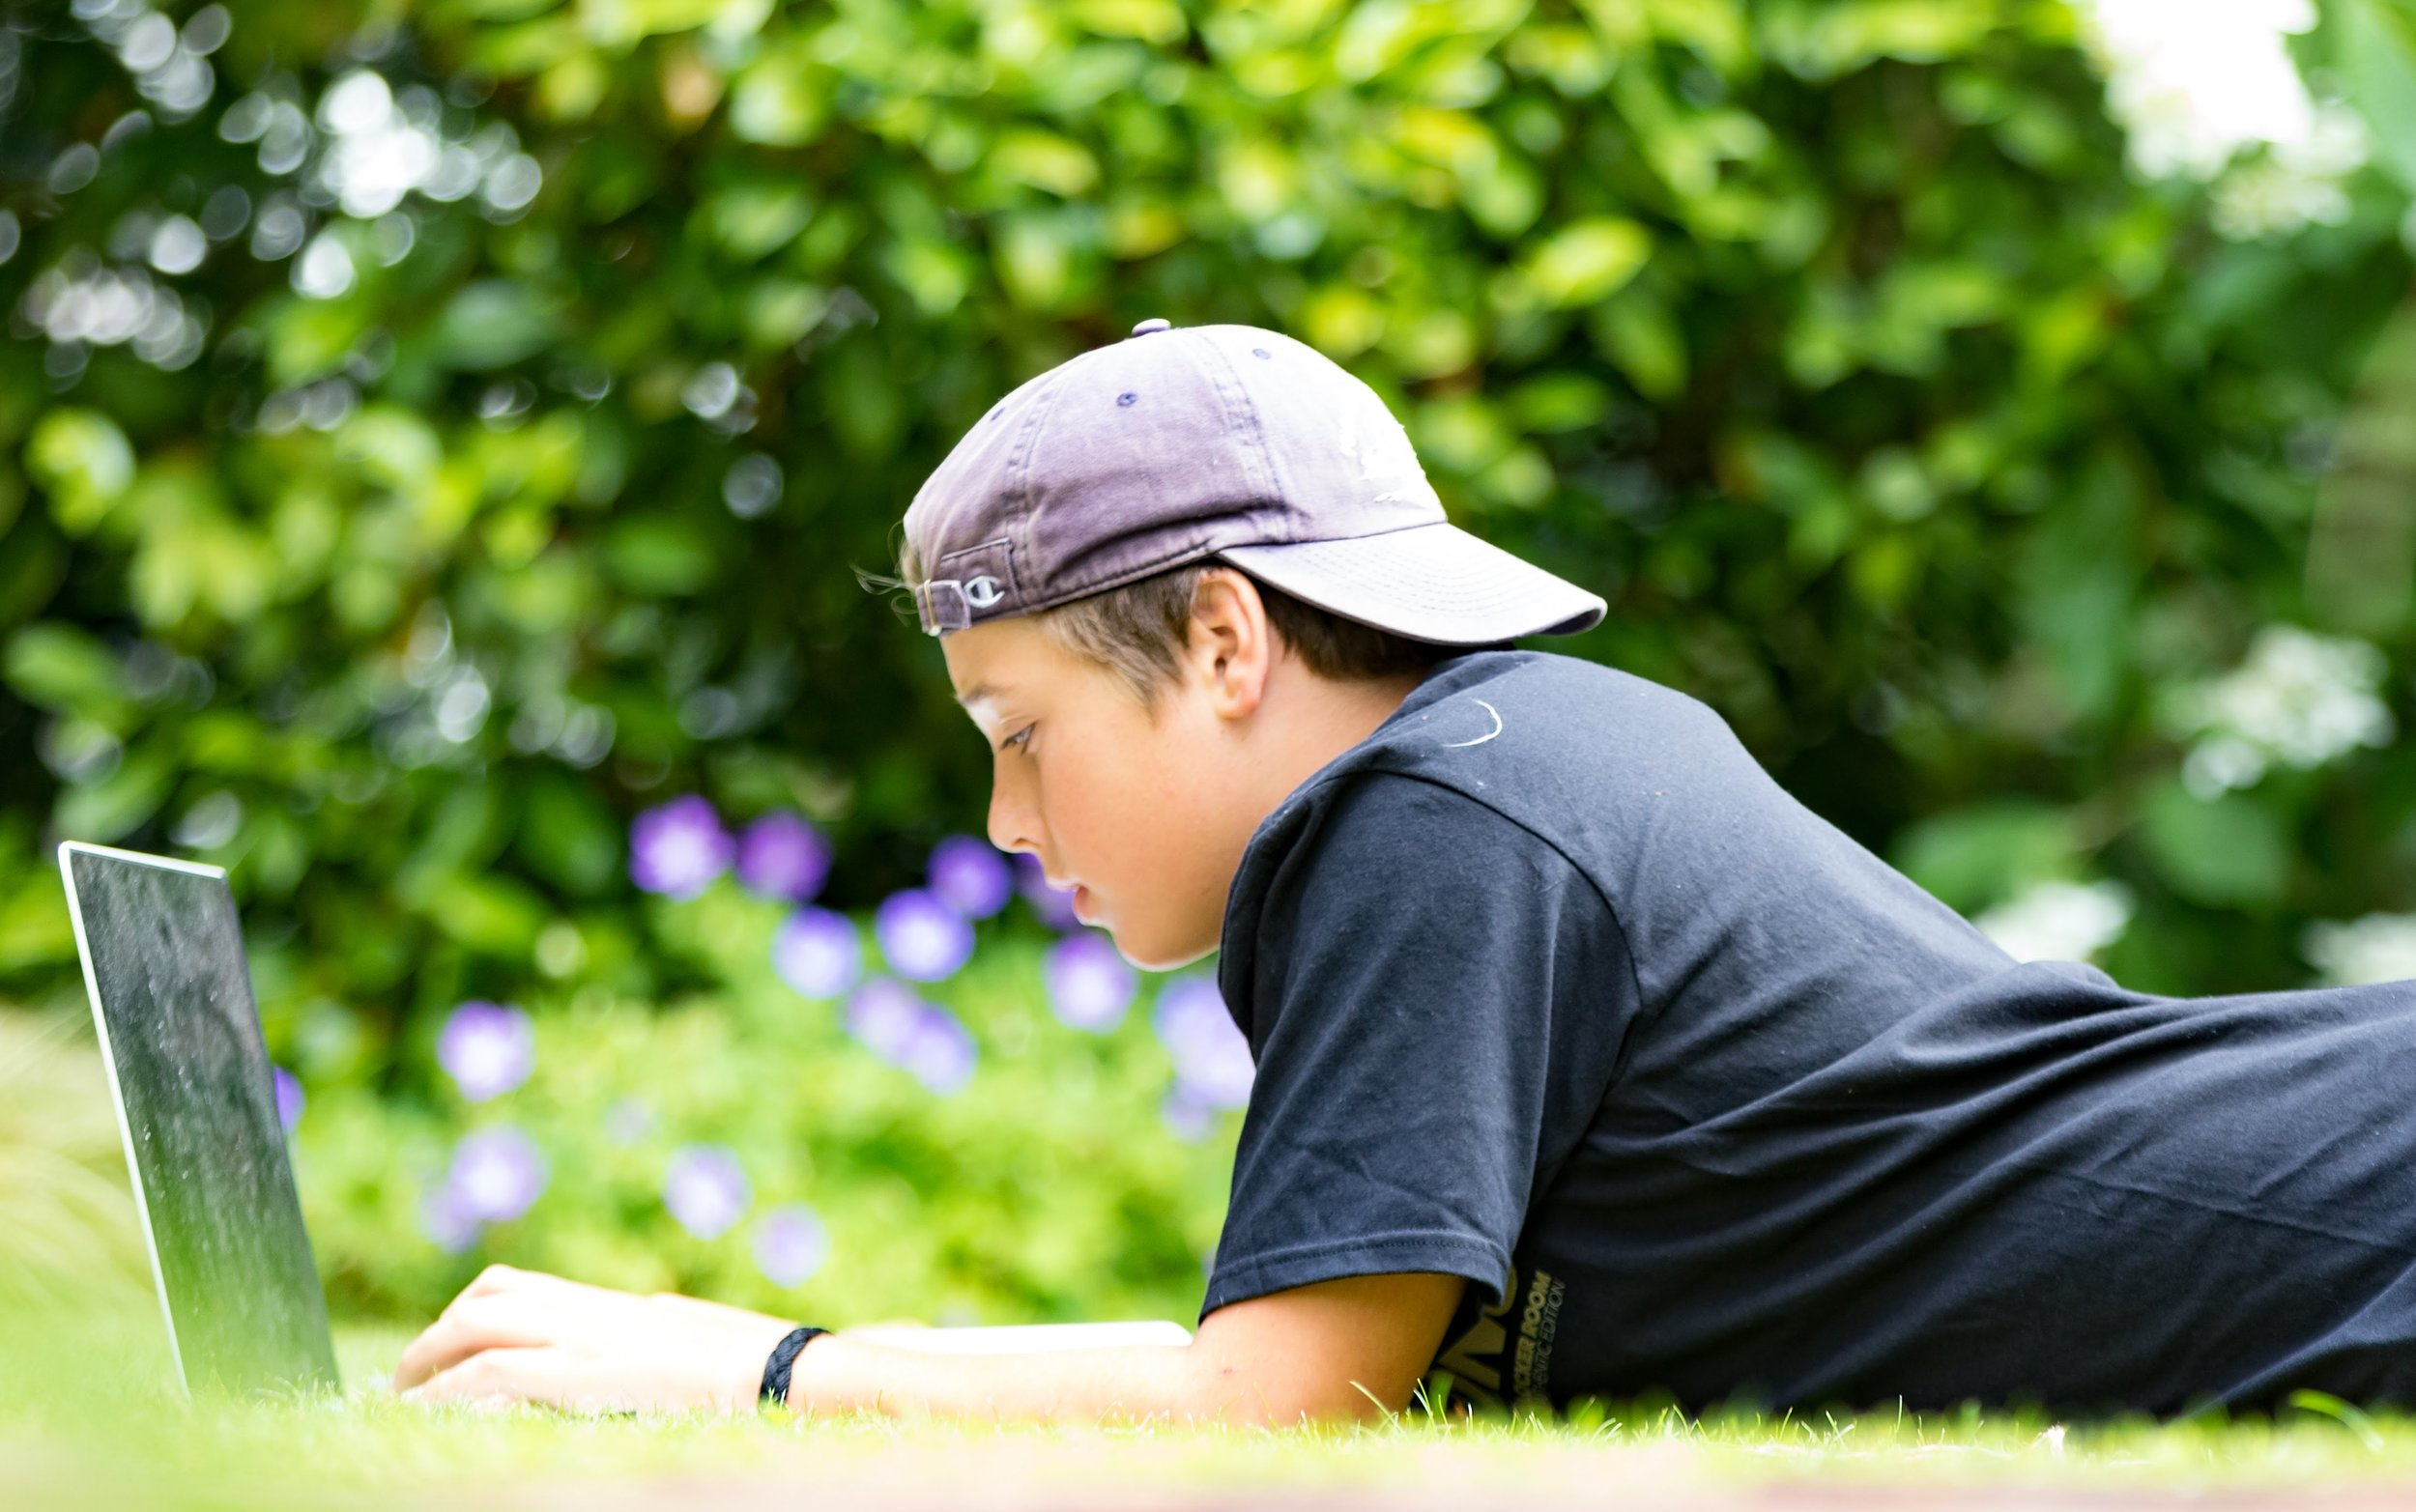 Boy writing in grass.jpeg